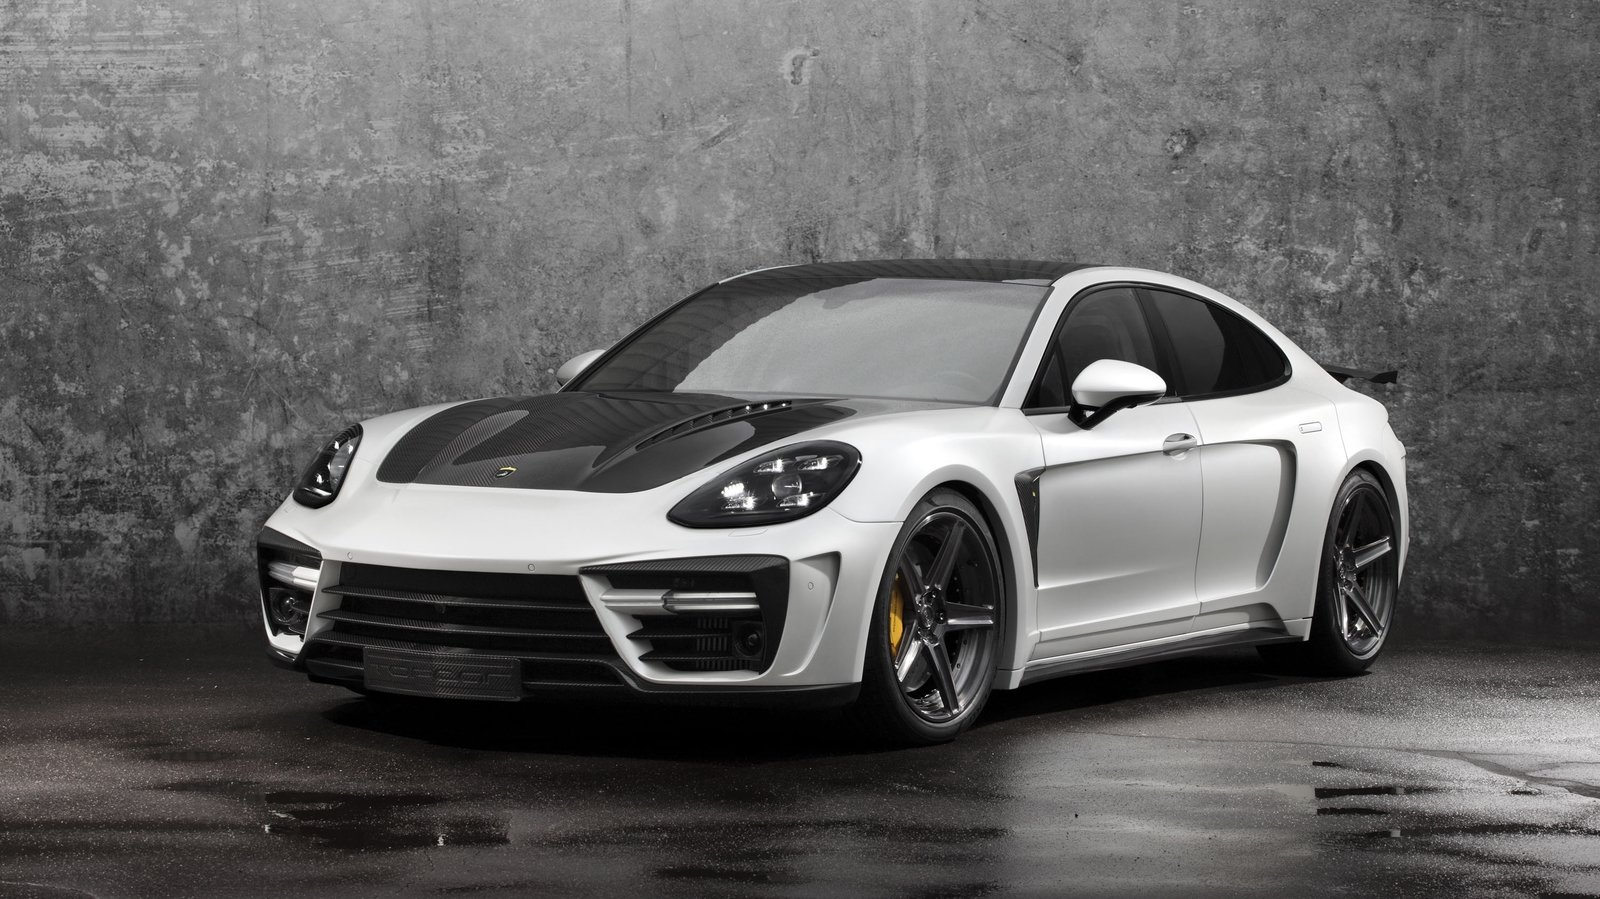 2018 porsche panamera stingray gtr by topcar review top speed. Black Bedroom Furniture Sets. Home Design Ideas